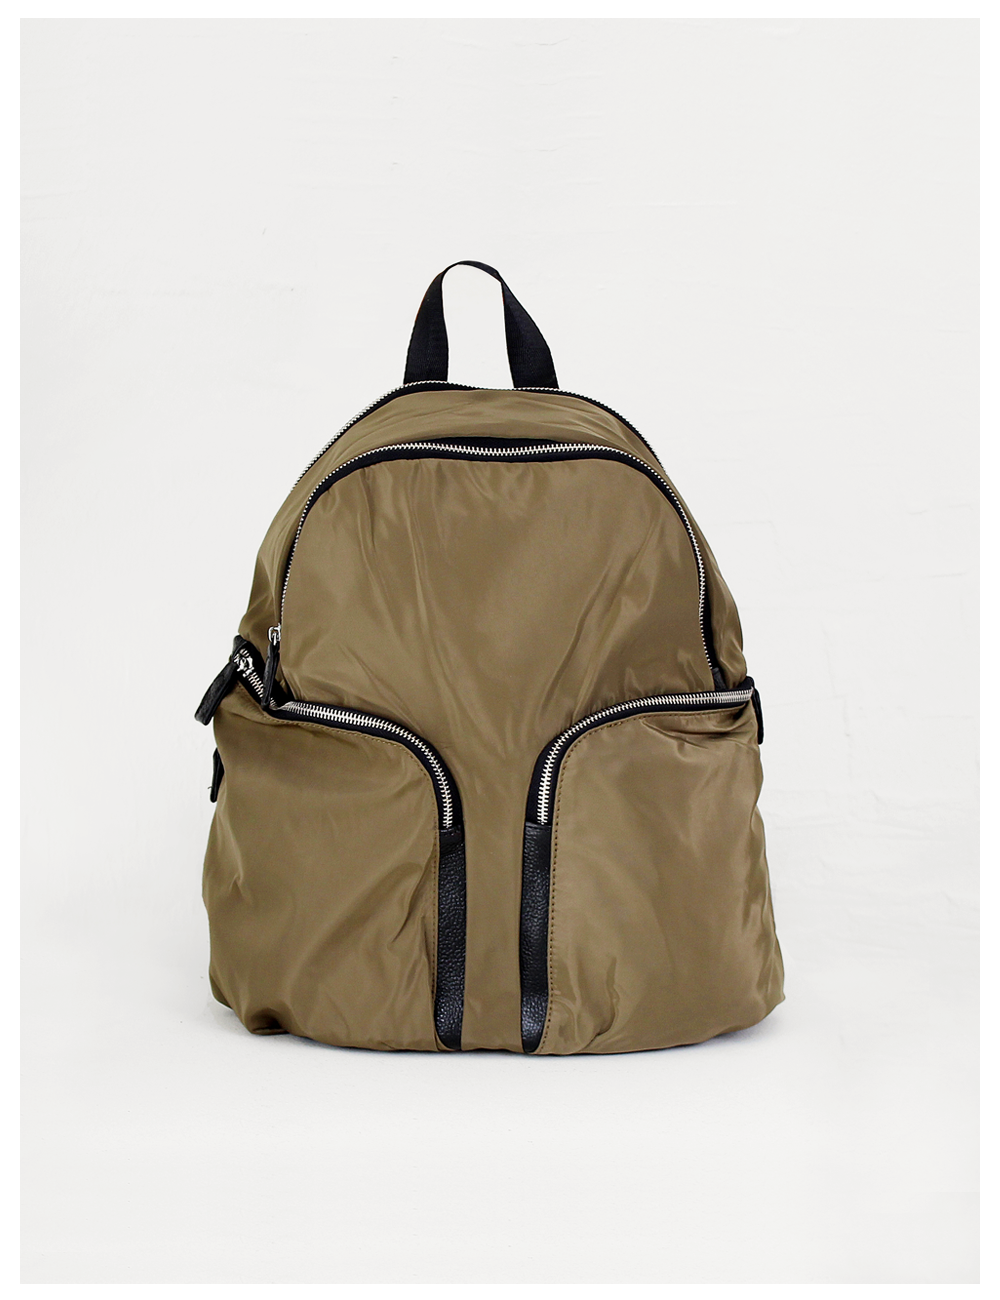 Too fine leather back pack_Khaki